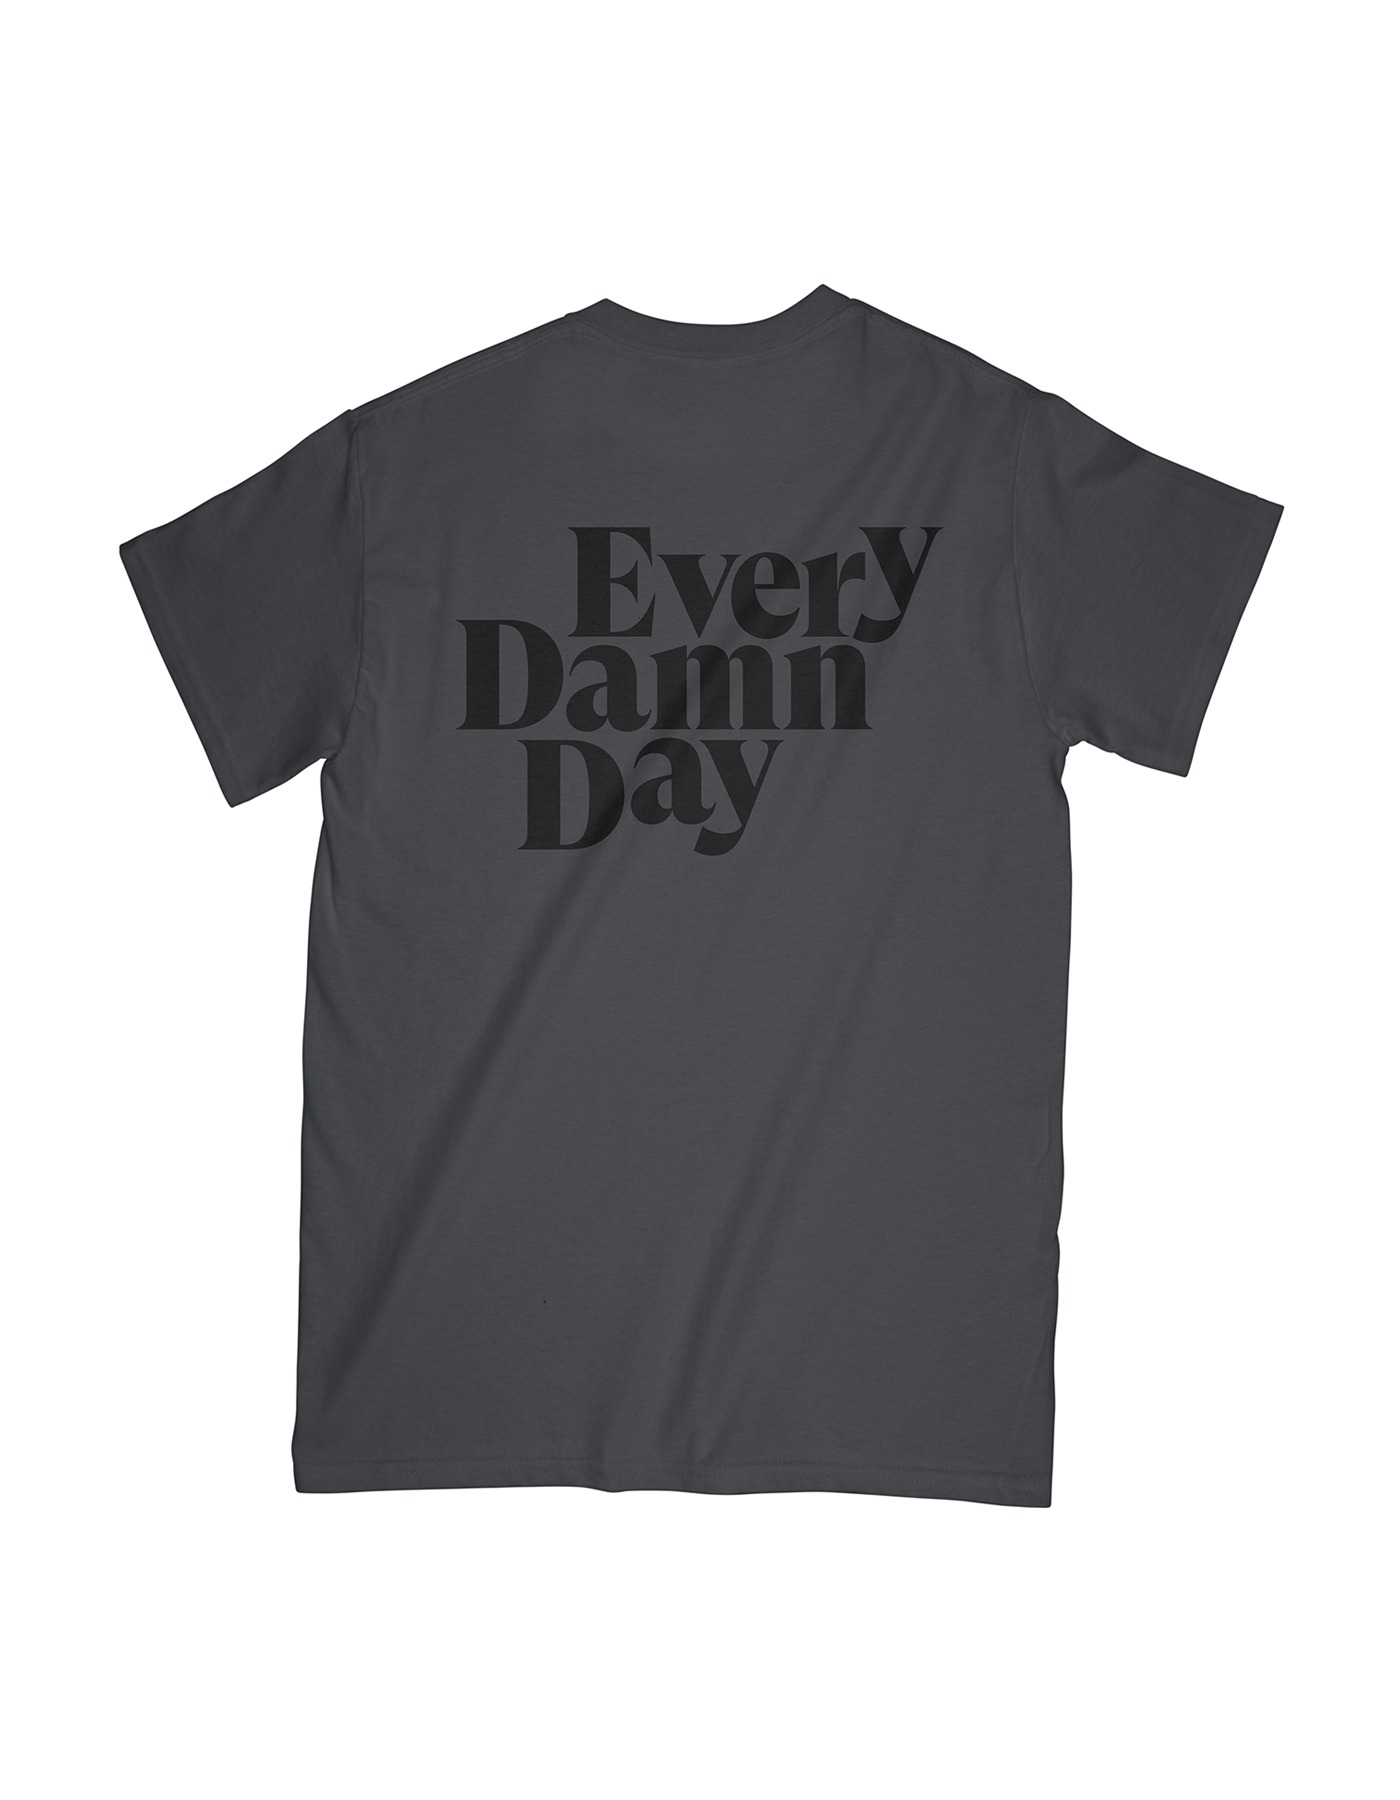 Every Damn Day T-shirts - Charcoal/Black